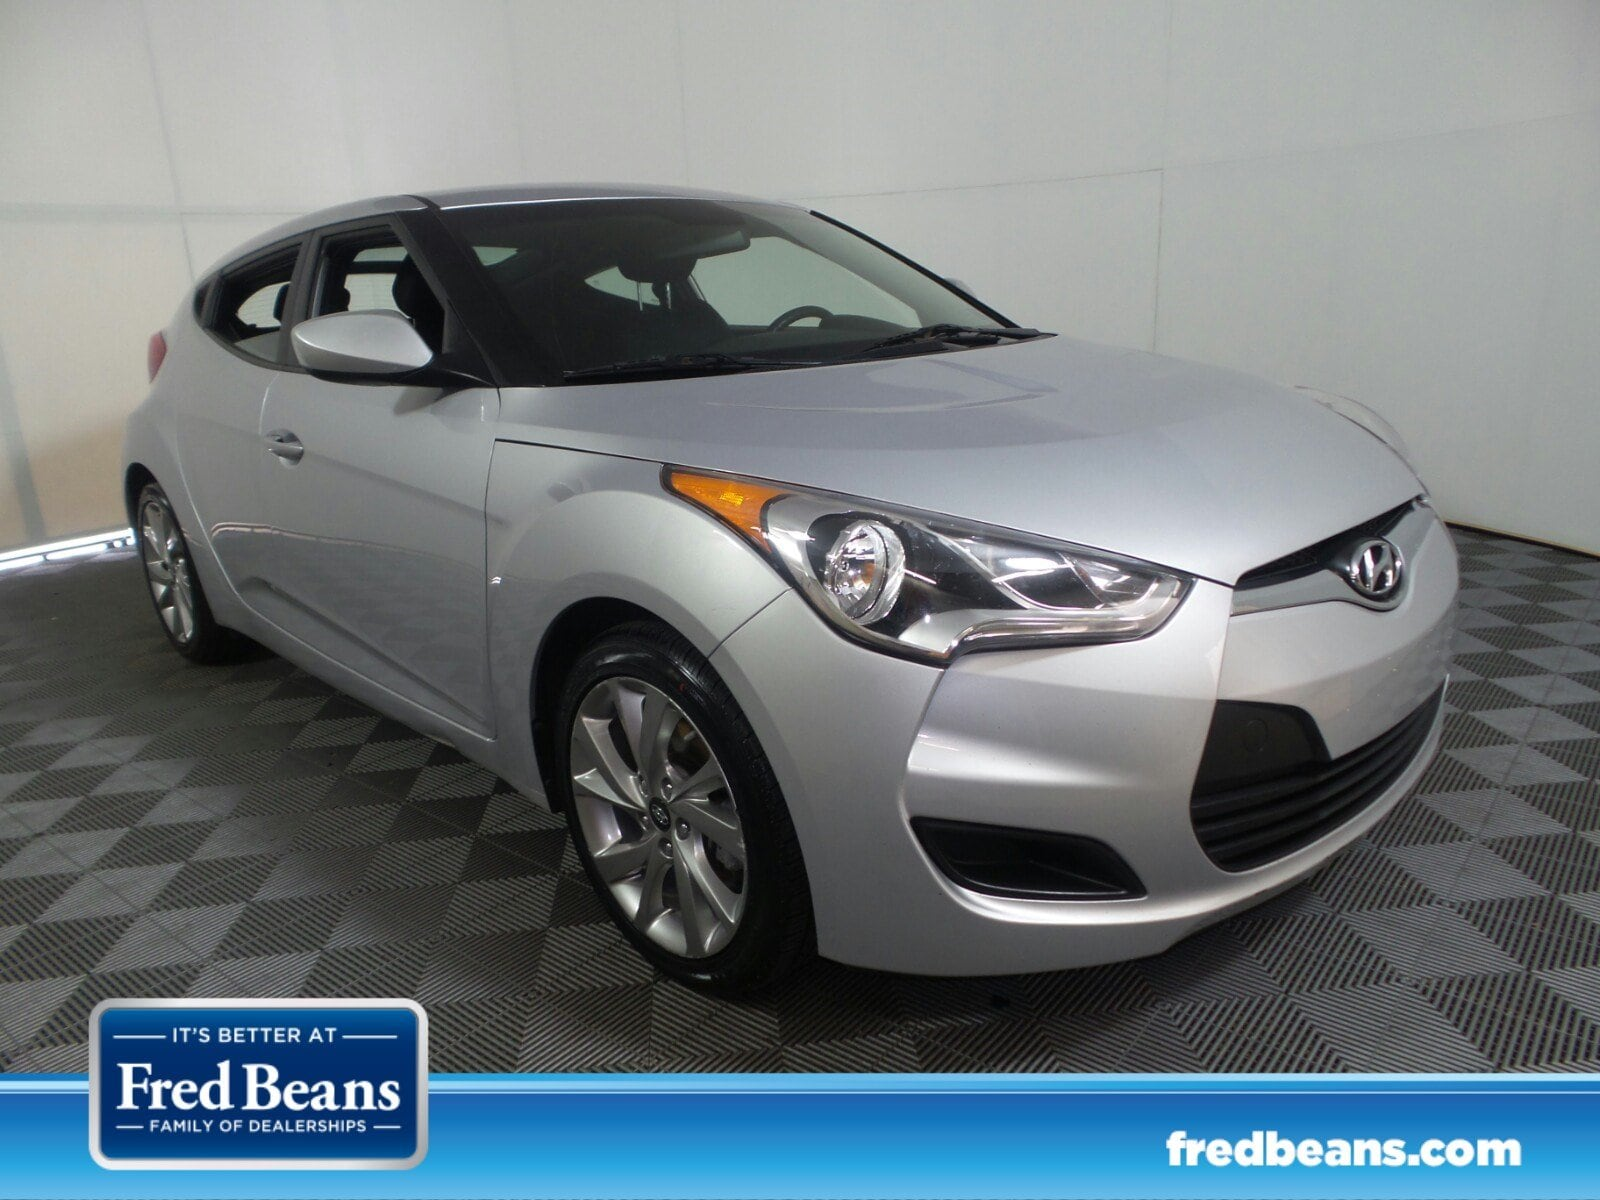 2019 Hyundai Veloster For Sale in Langhorne PA | Fred Beans